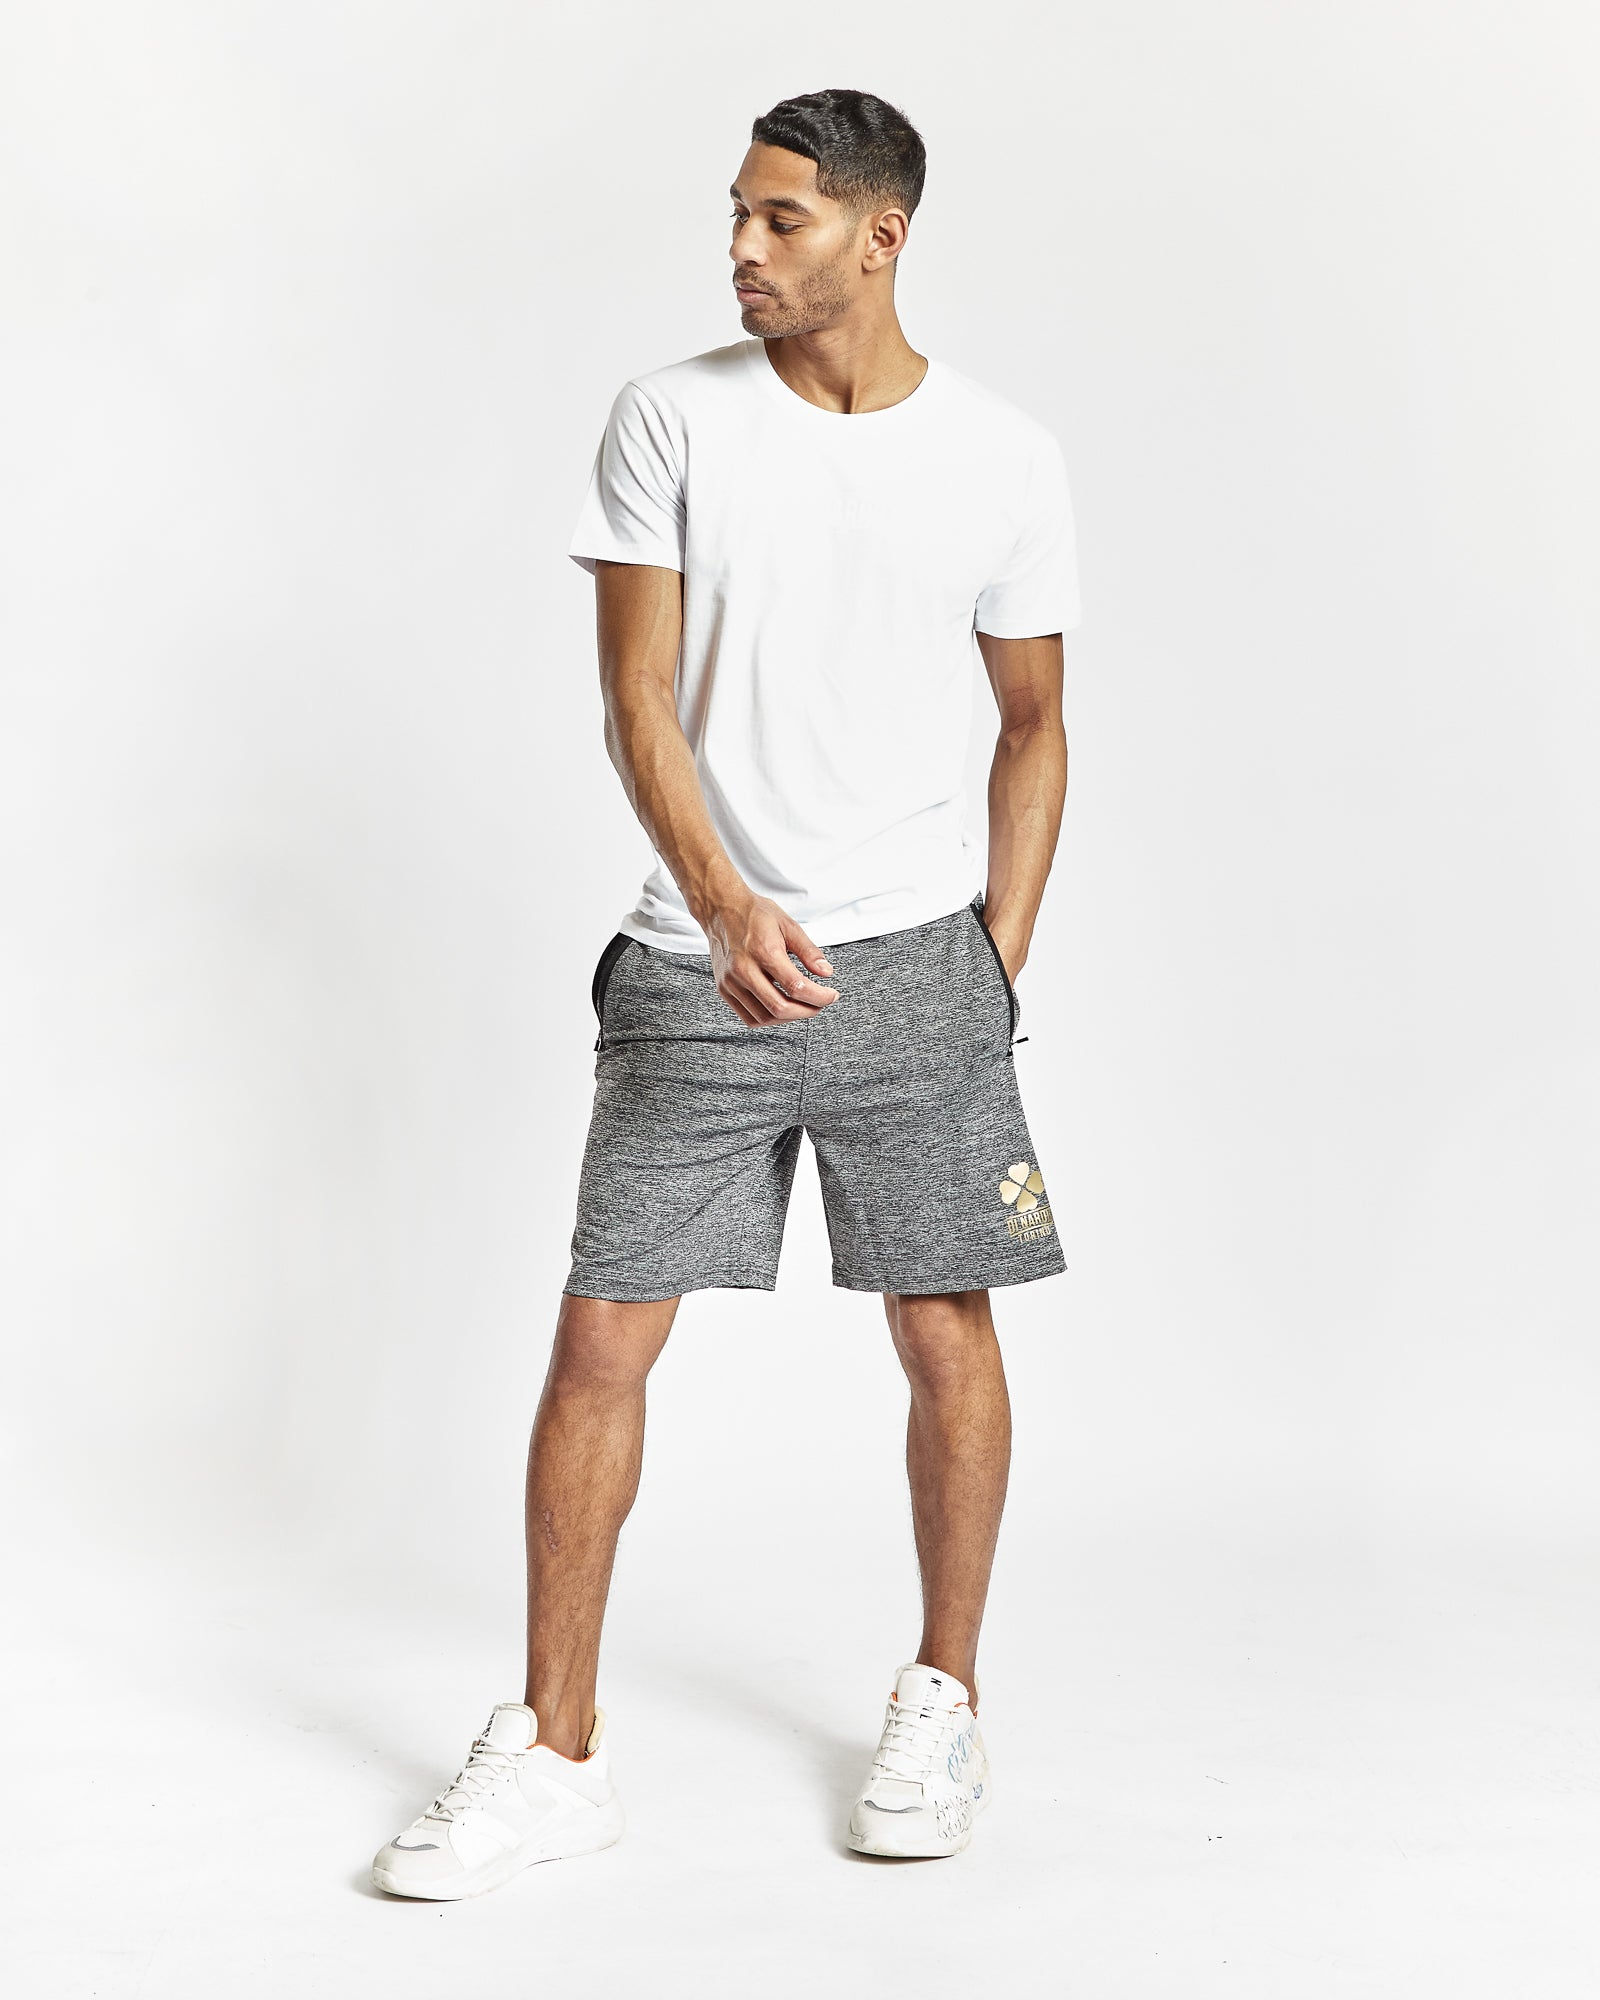 Di Nardo Men's Grey Gym Shorts